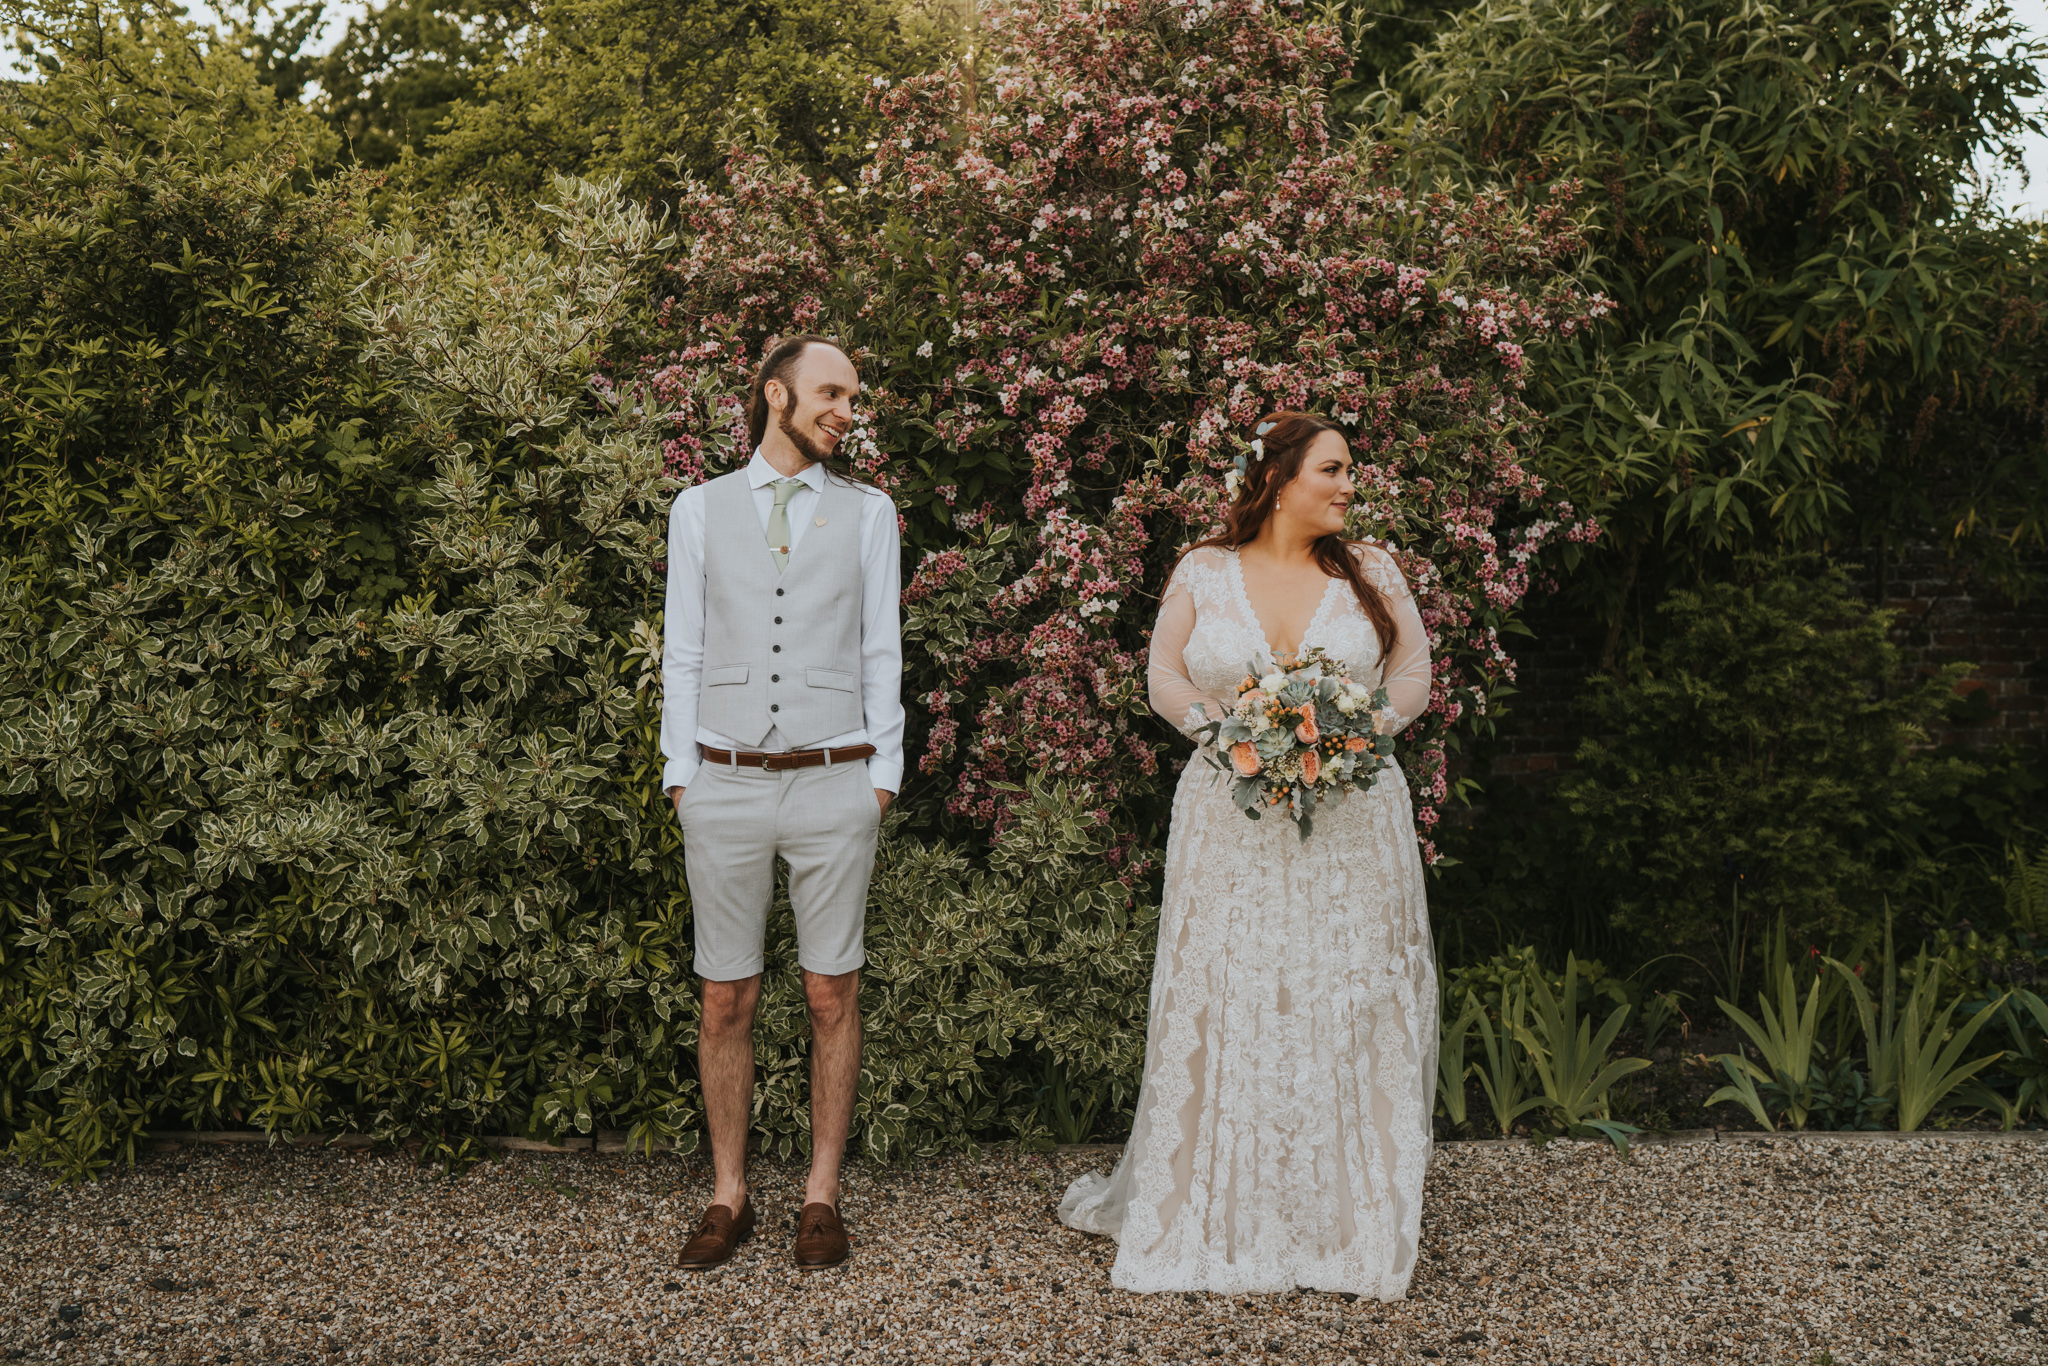 hayley-sam-secret-garden-kent-boho-wedding-grace-elizabeth-colchester-essex-alternative-wedding-photographer-essex-suffolk-norfolk-devon (32 of 36).jpg